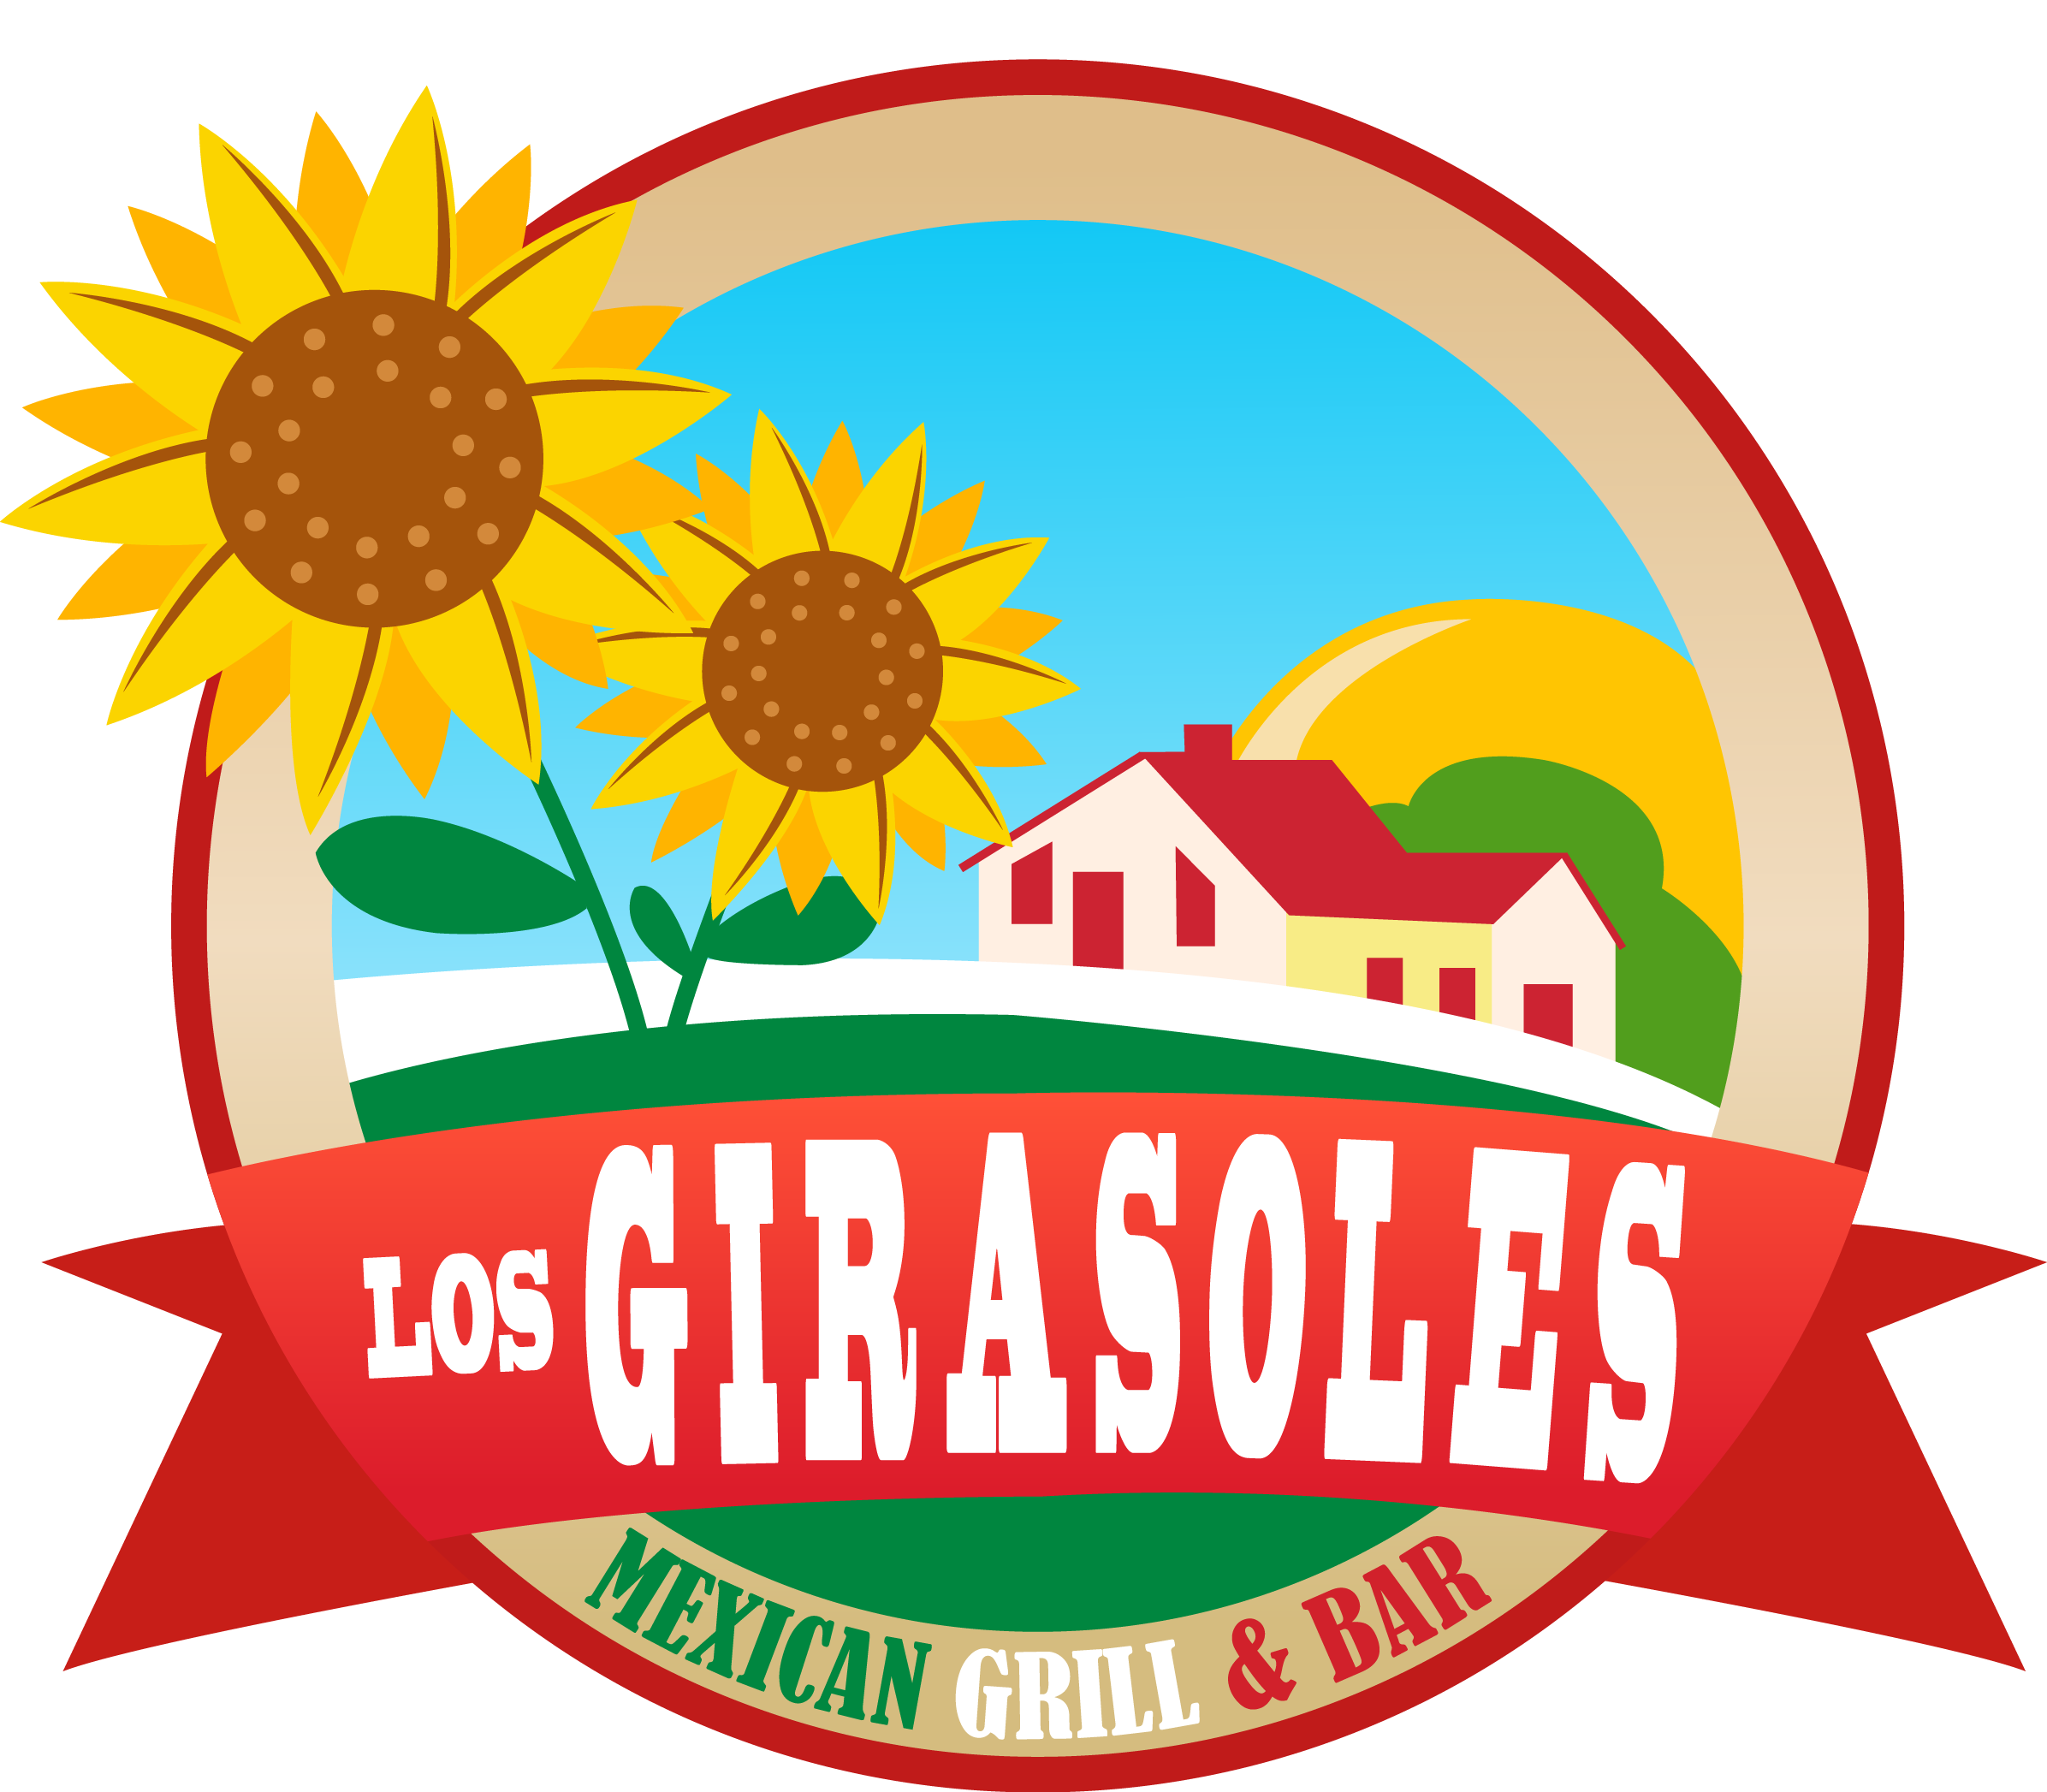 Los Girasoles Mexican Grill & Bar